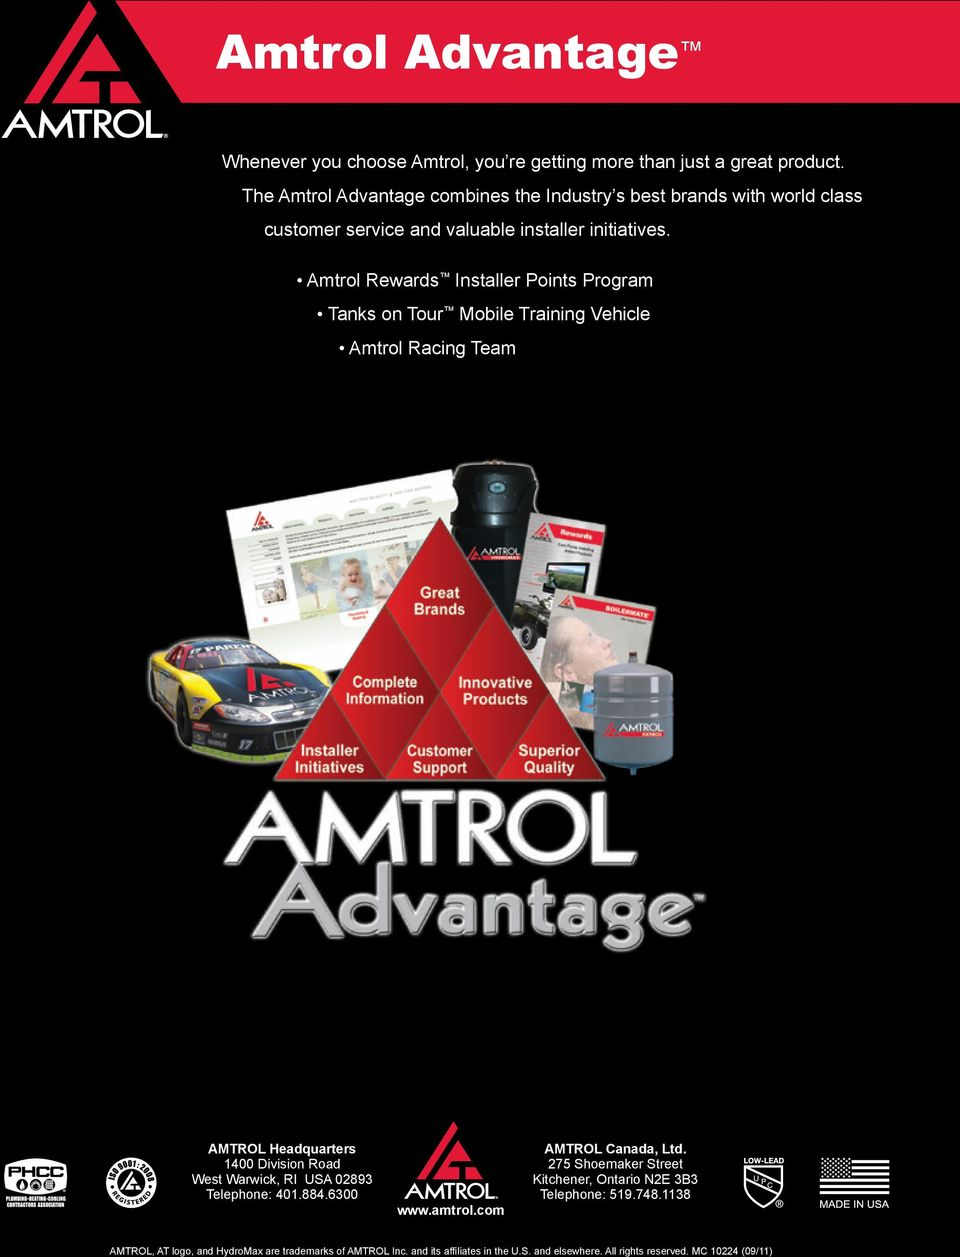 Amtrol Rewards Installer Points Program Tanks on Tour Mobile Training Vehicle Amtrol Racing Team AMTROL Headquarters 1400 Division Road West Warwick, RI USA 02893